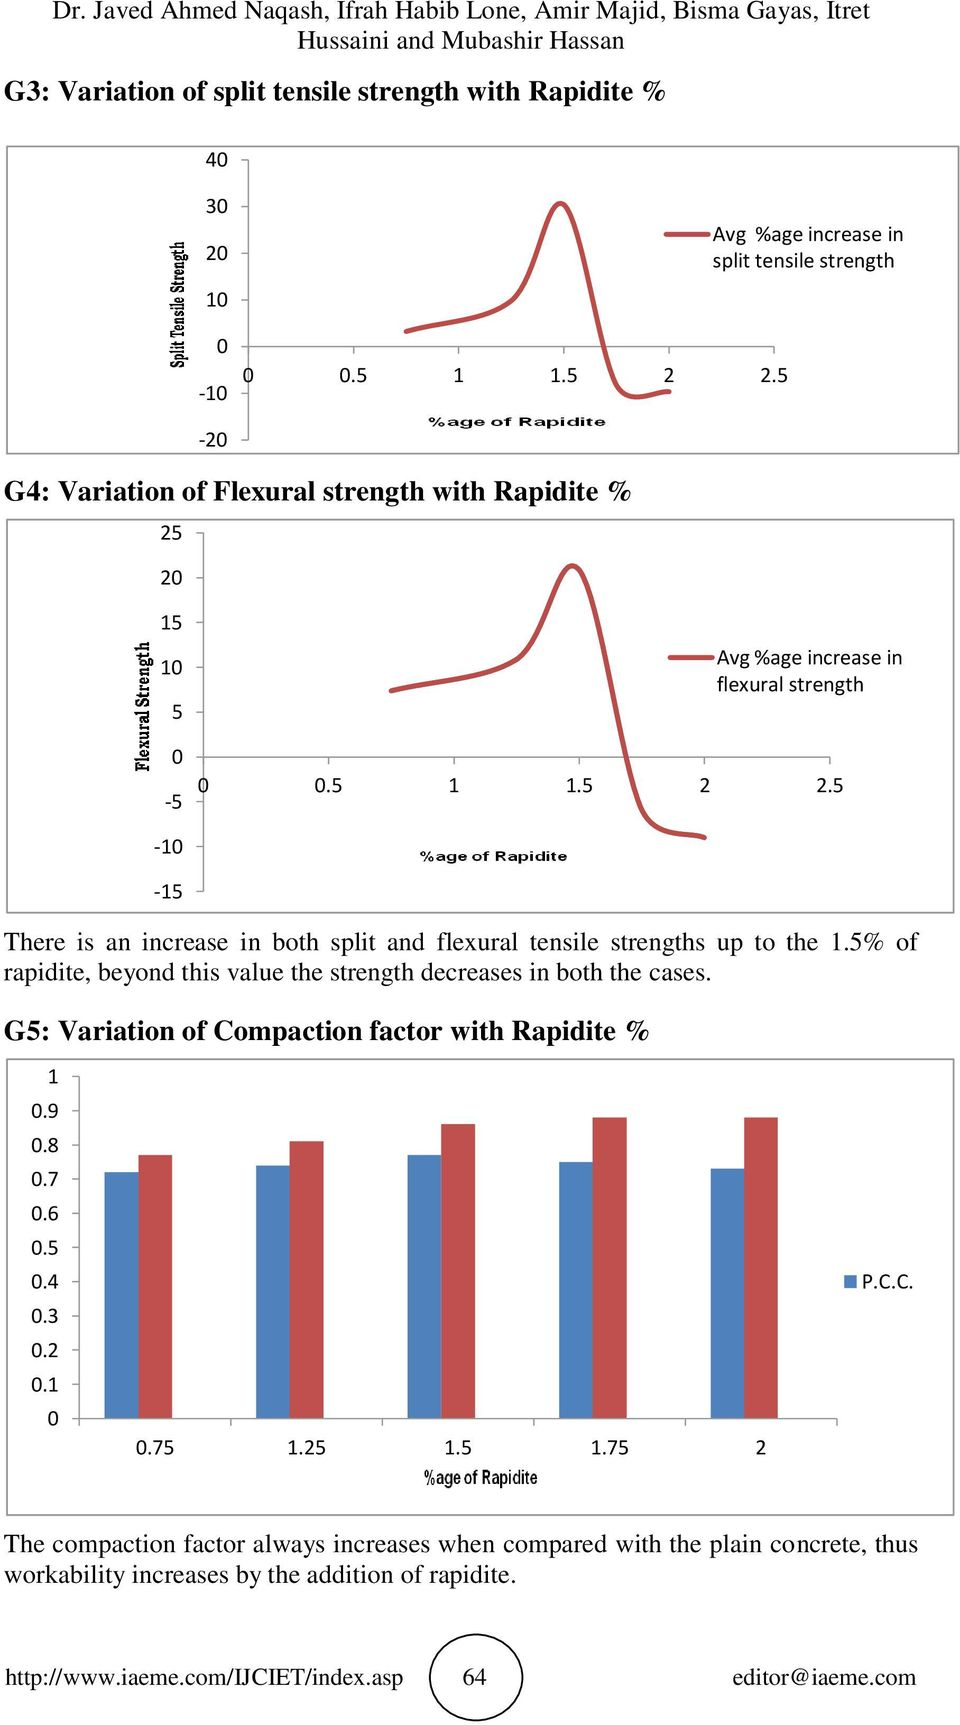 5-1 -15 There is an increase in both split and flexural tensile strengths up to the 1.5% of rapidite, beyond this value the strength decreases in both the cases.